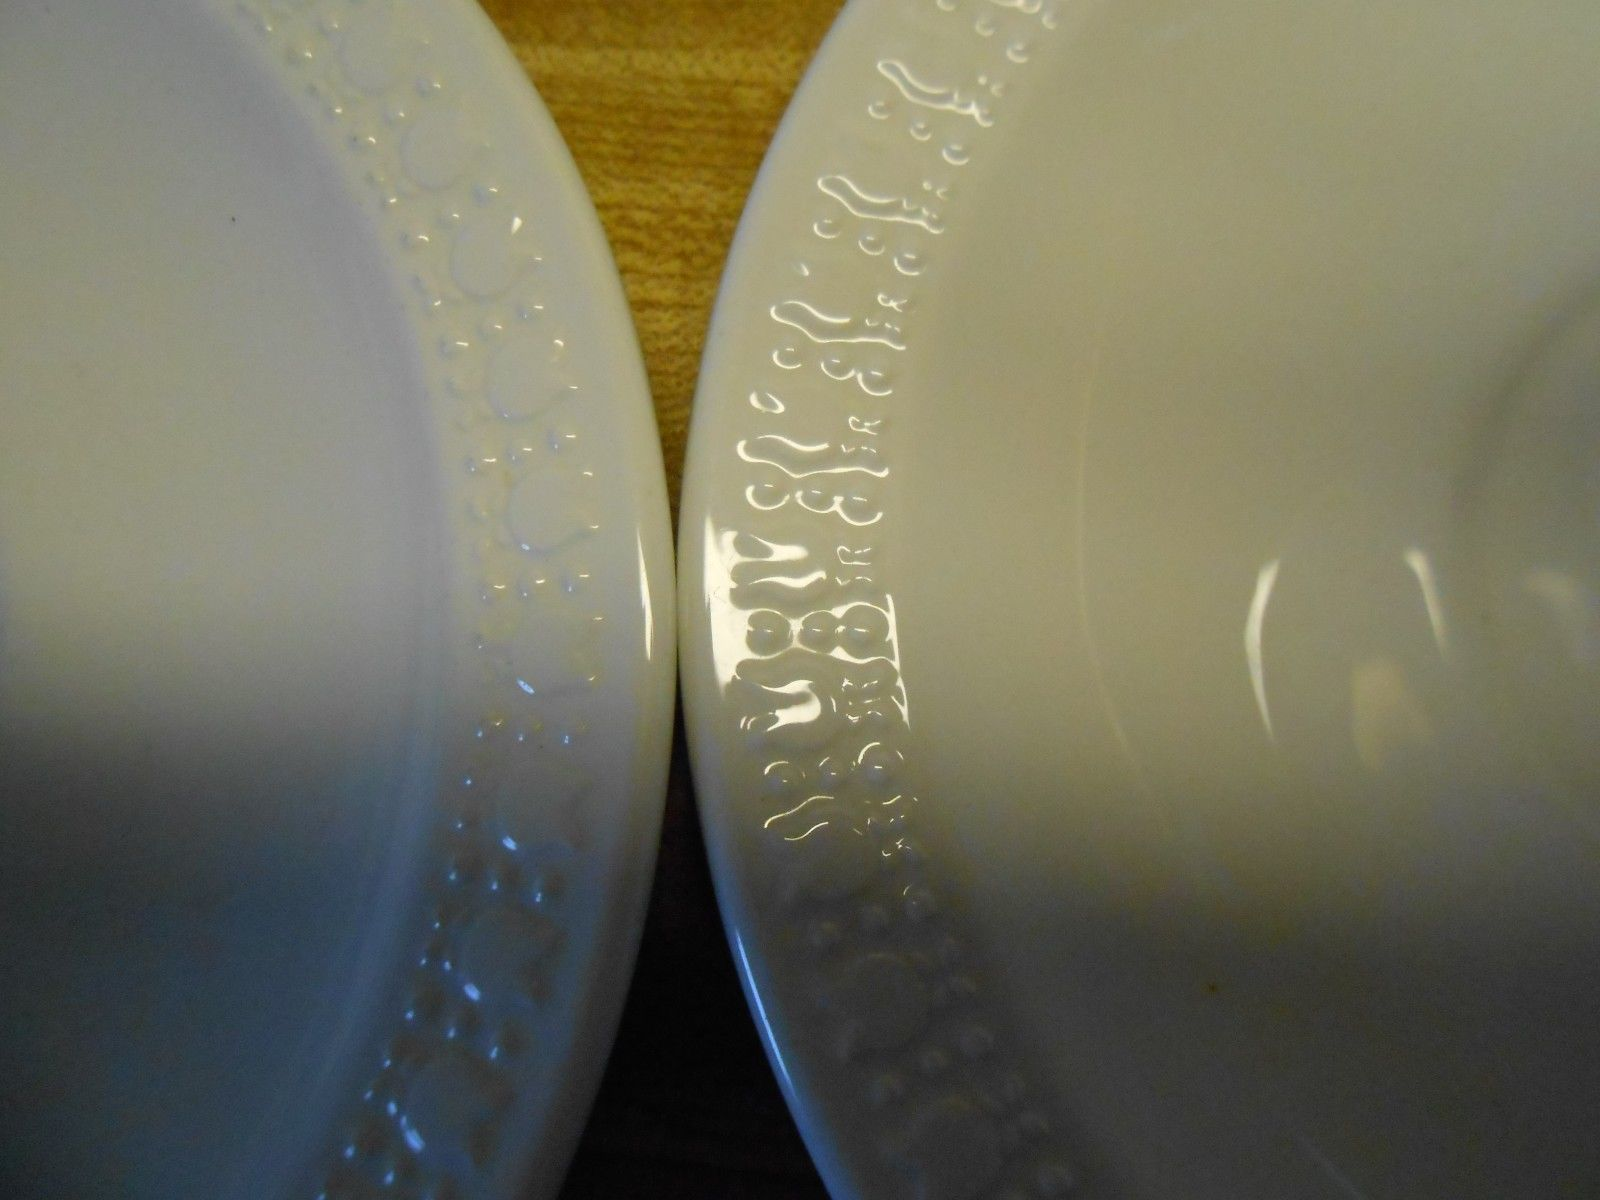 ... pyroceram brand tableware by corning ... : pyroceram tableware by corning - pezcame.com